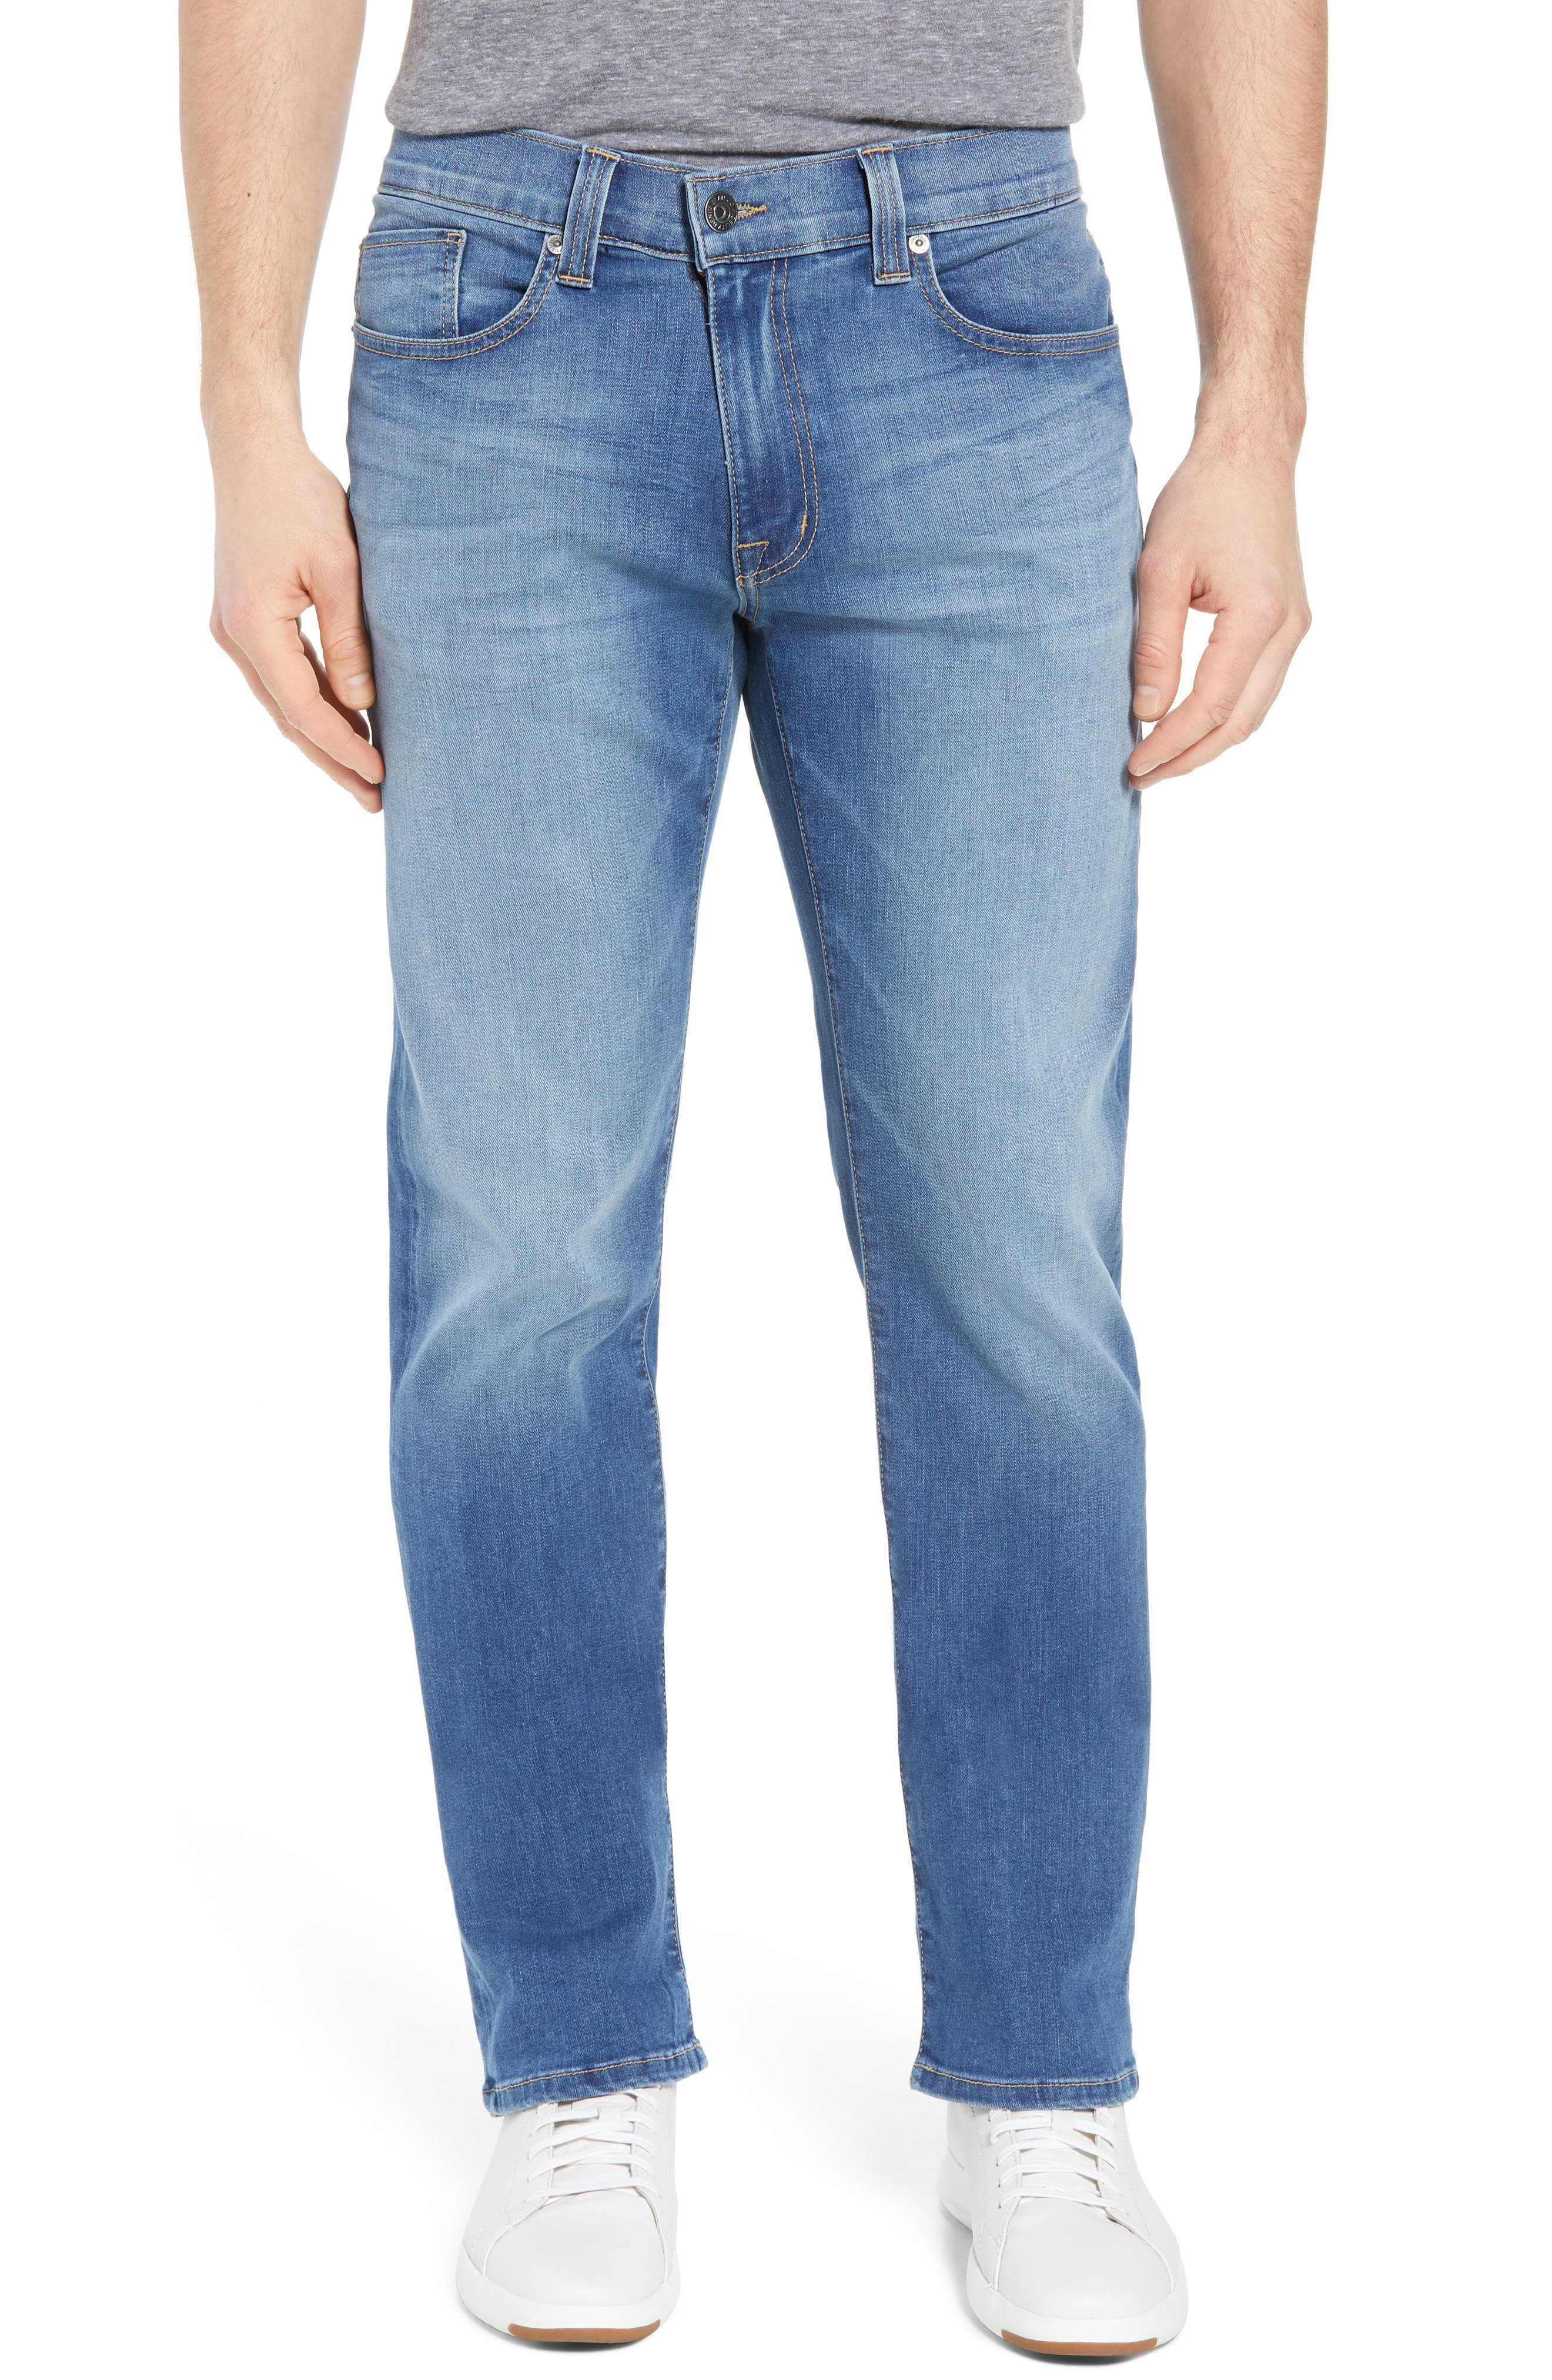 50-11 Relaxed Fit Jeans,                             Main thumbnail 1, color,